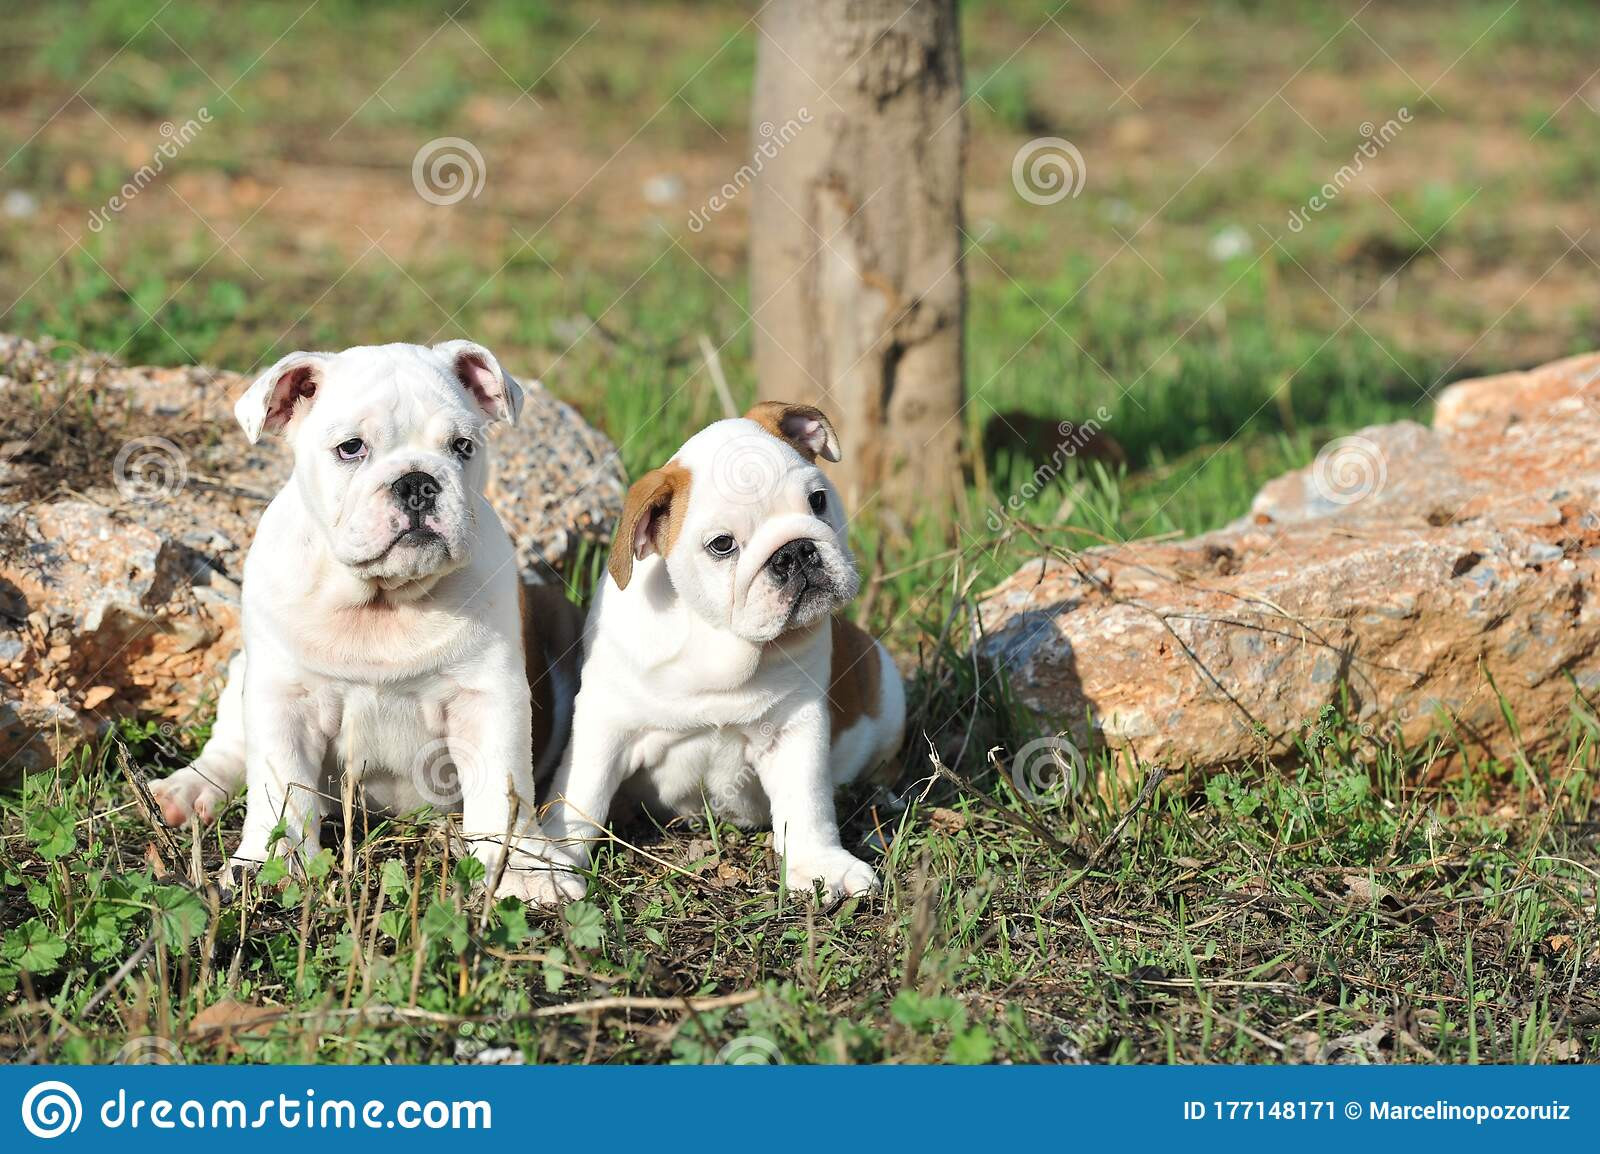 Cute Couple Of English Bulldog Puppies On The Grass In The Park Stock Image Image Of Park Looking 177148171